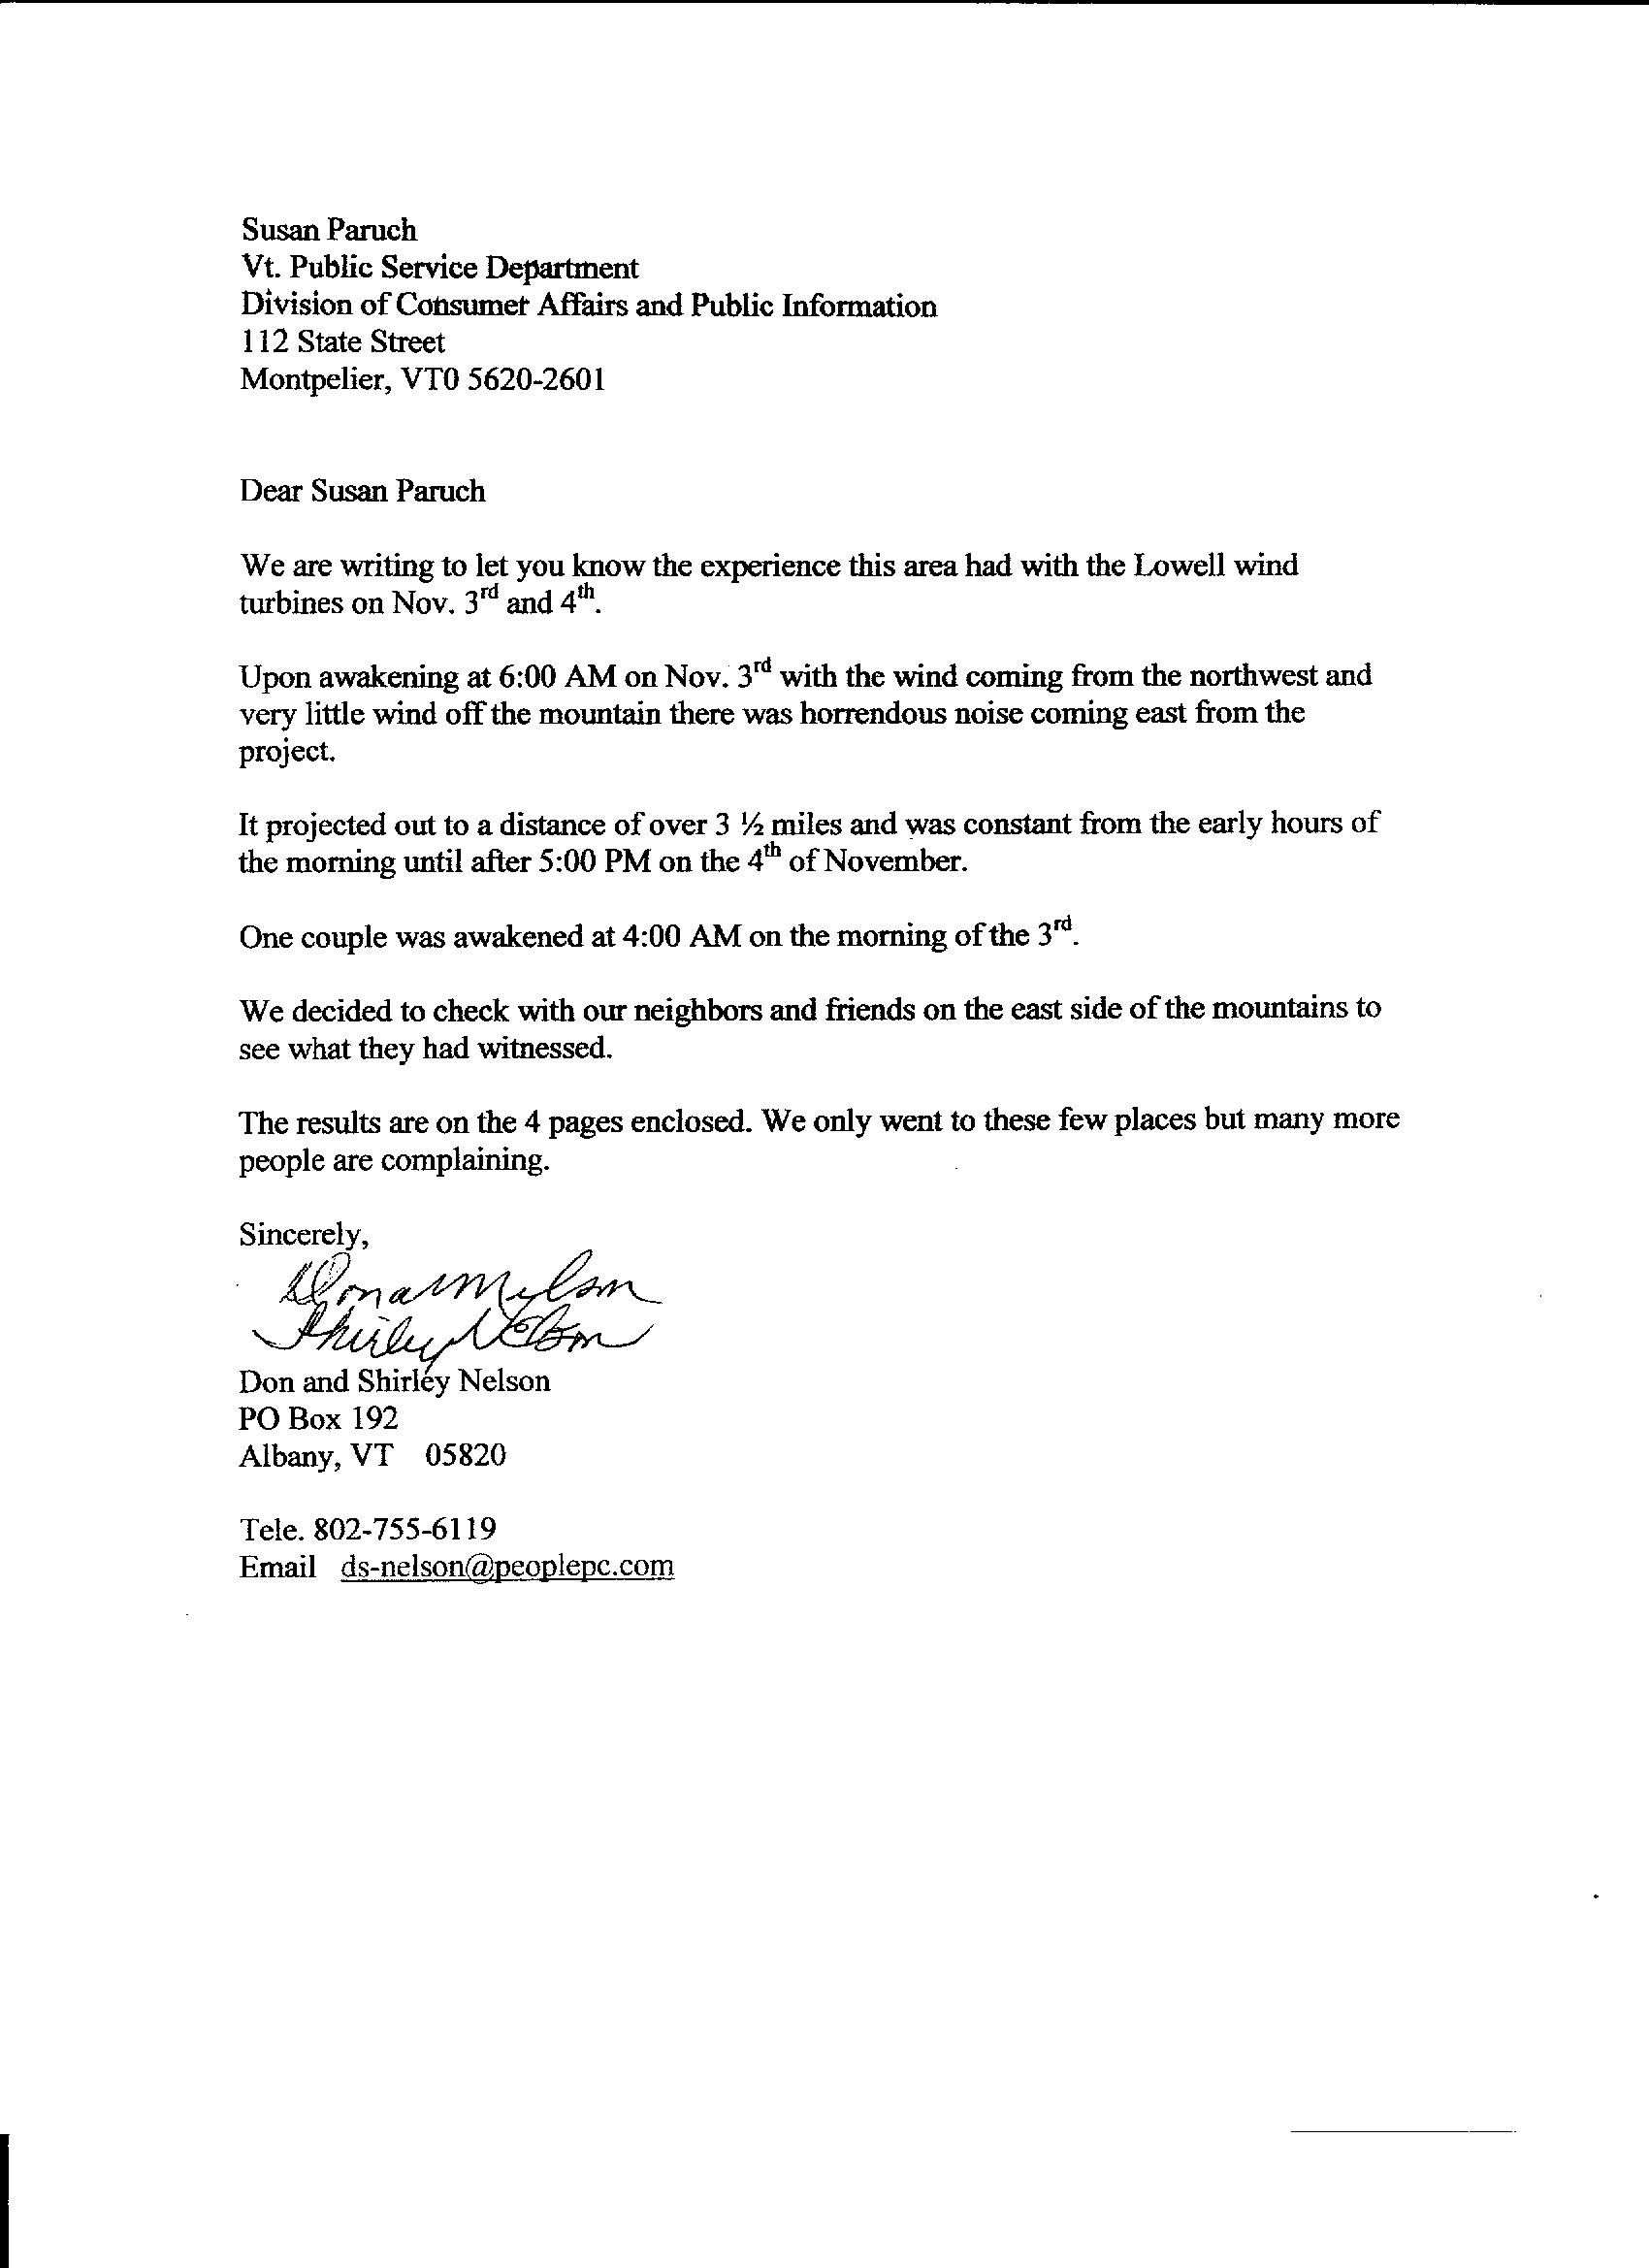 Noise Complaint Letter - A Noise Complaint letter could be written